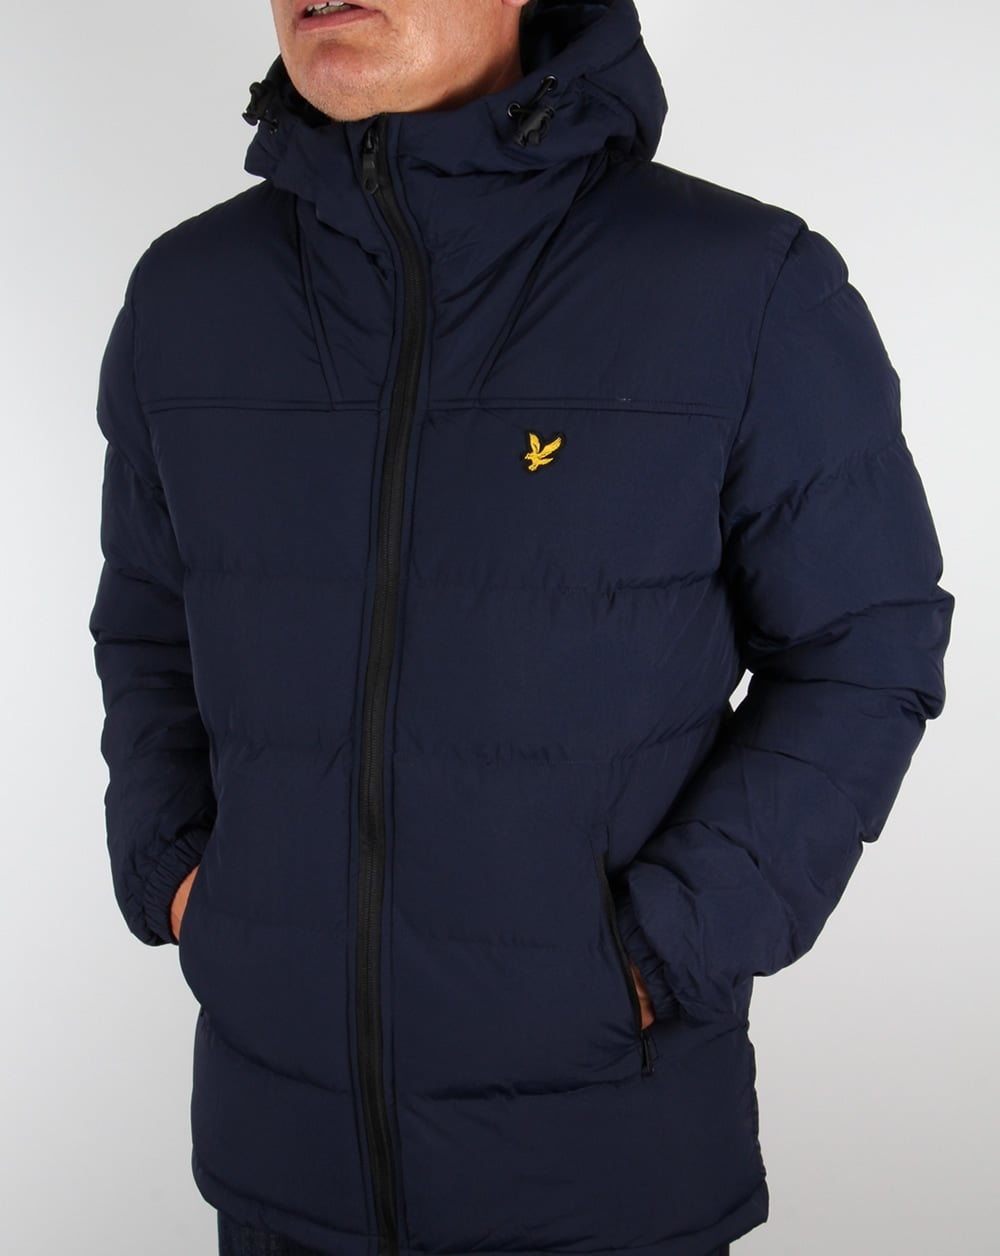 lyle and scott jacket navy wadded bubble padded puffer. Black Bedroom Furniture Sets. Home Design Ideas